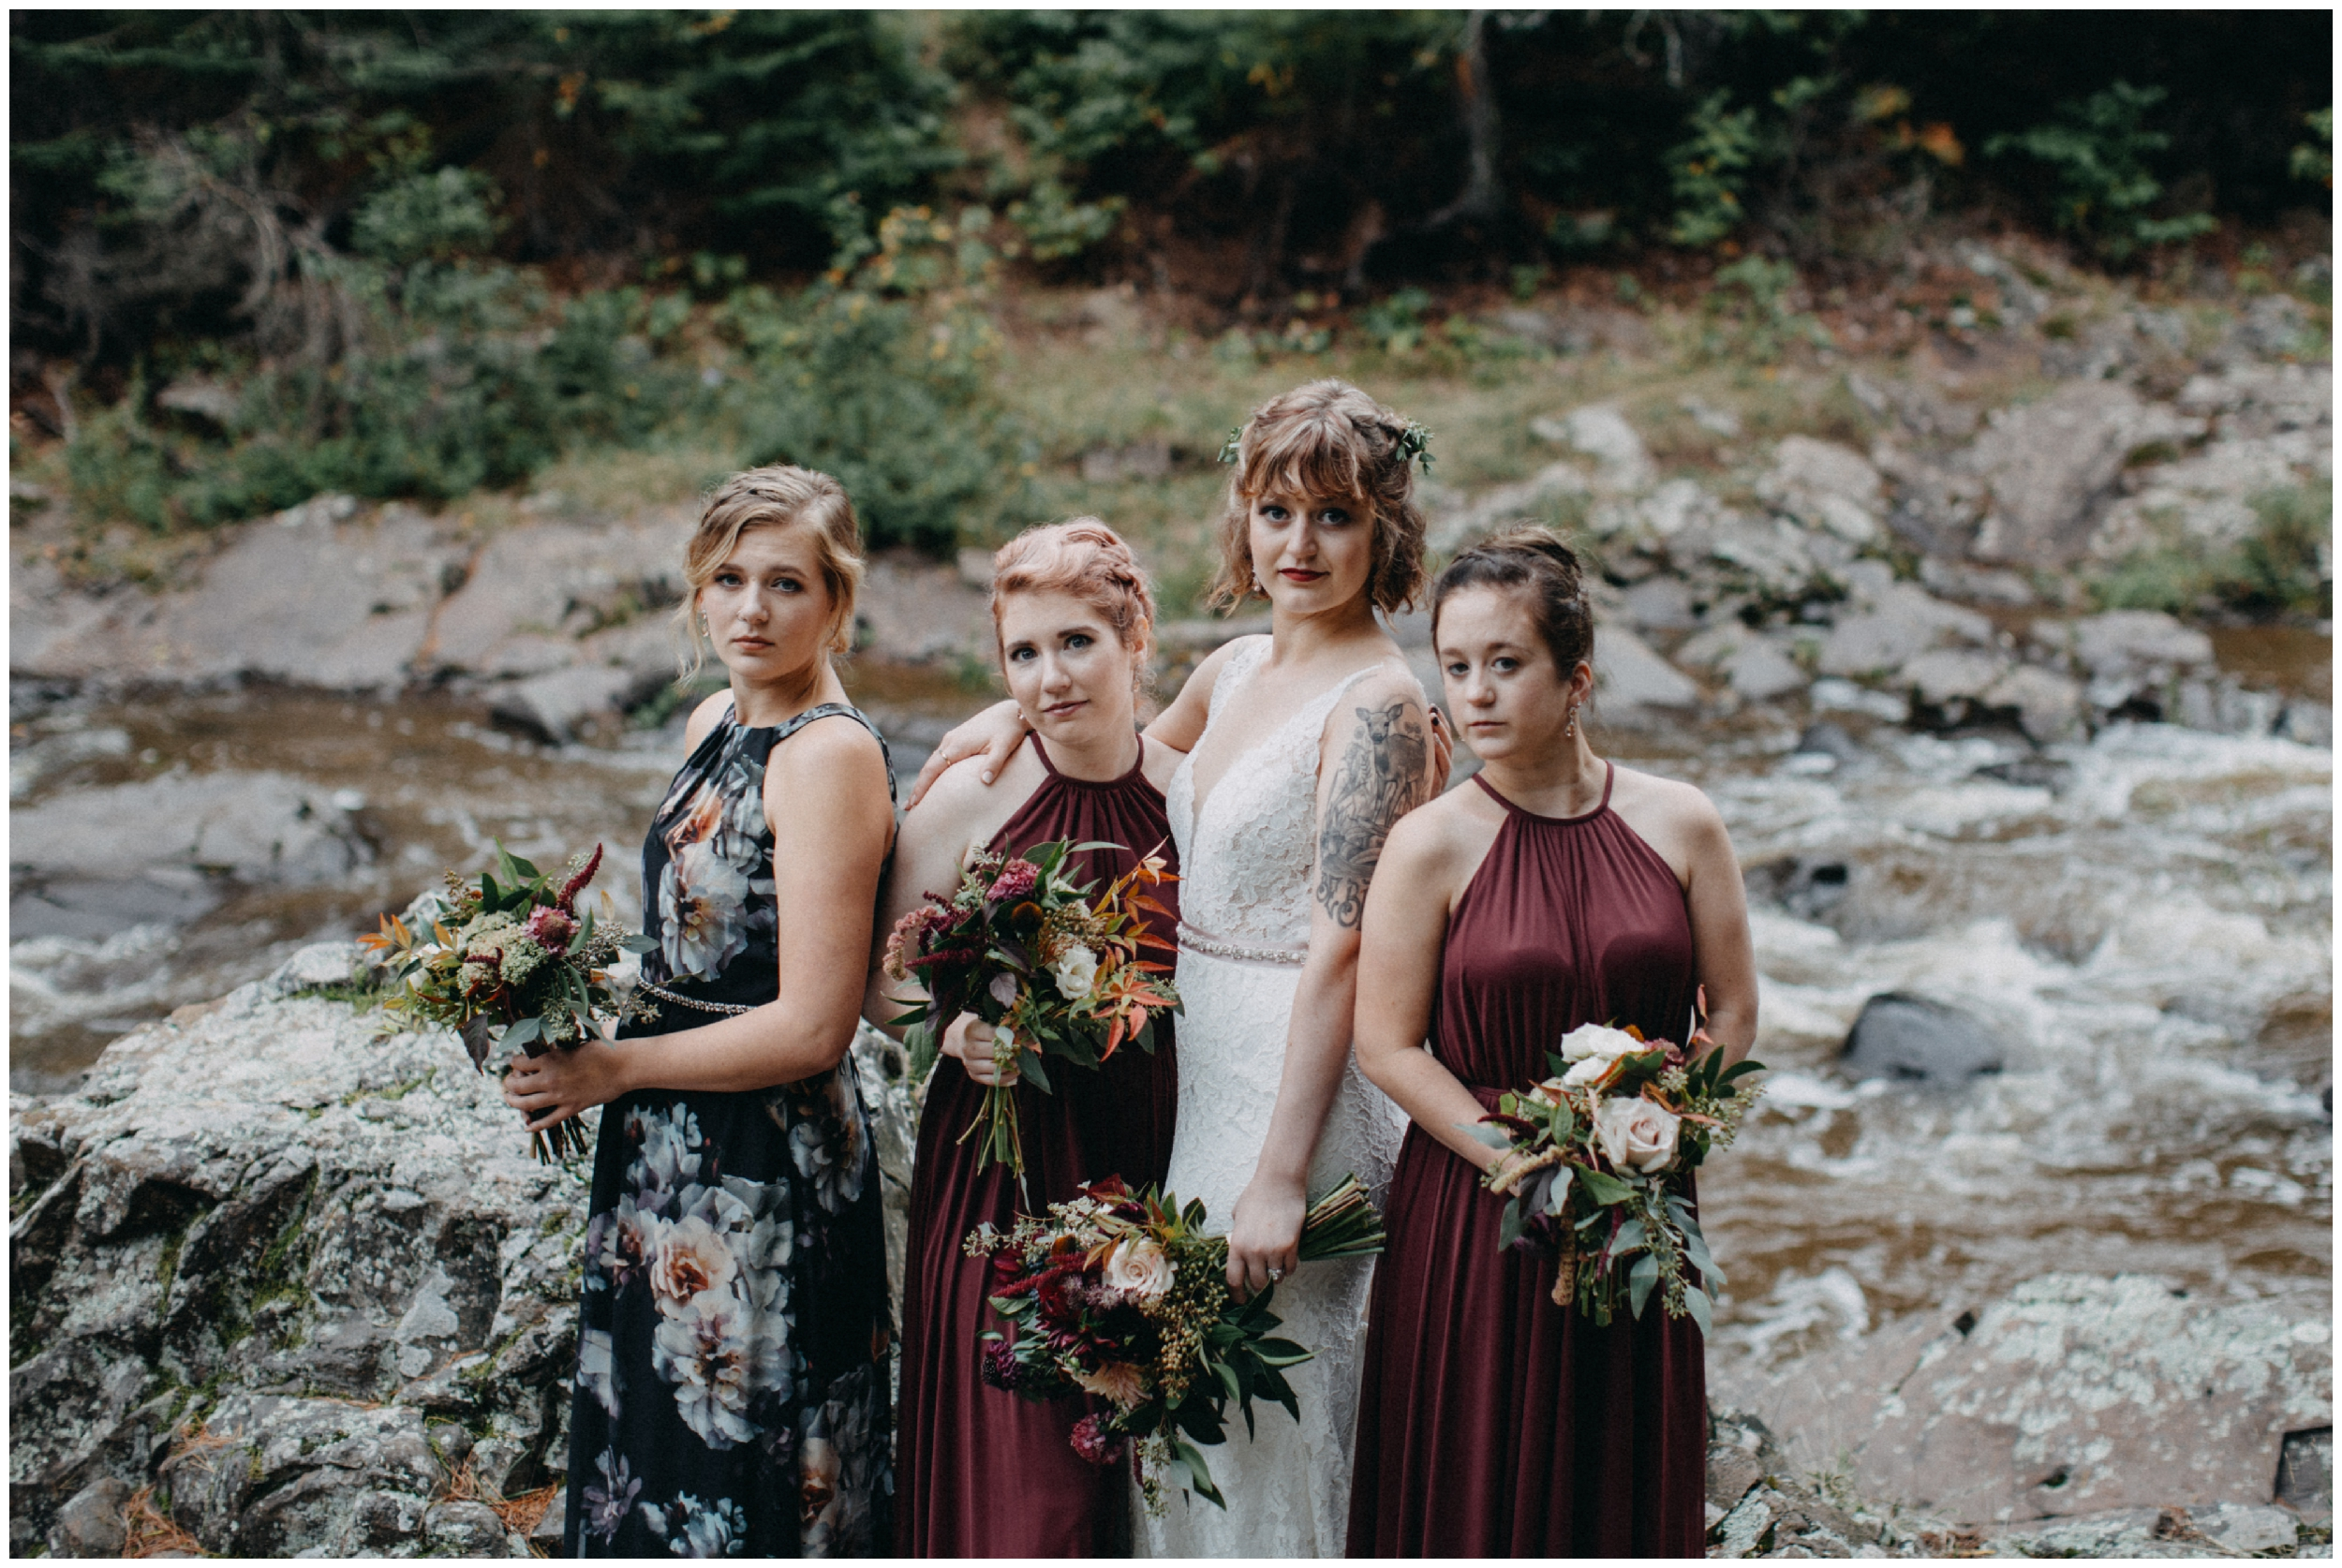 Artistic portrait of bride with bridesmaids at Duluth wedding